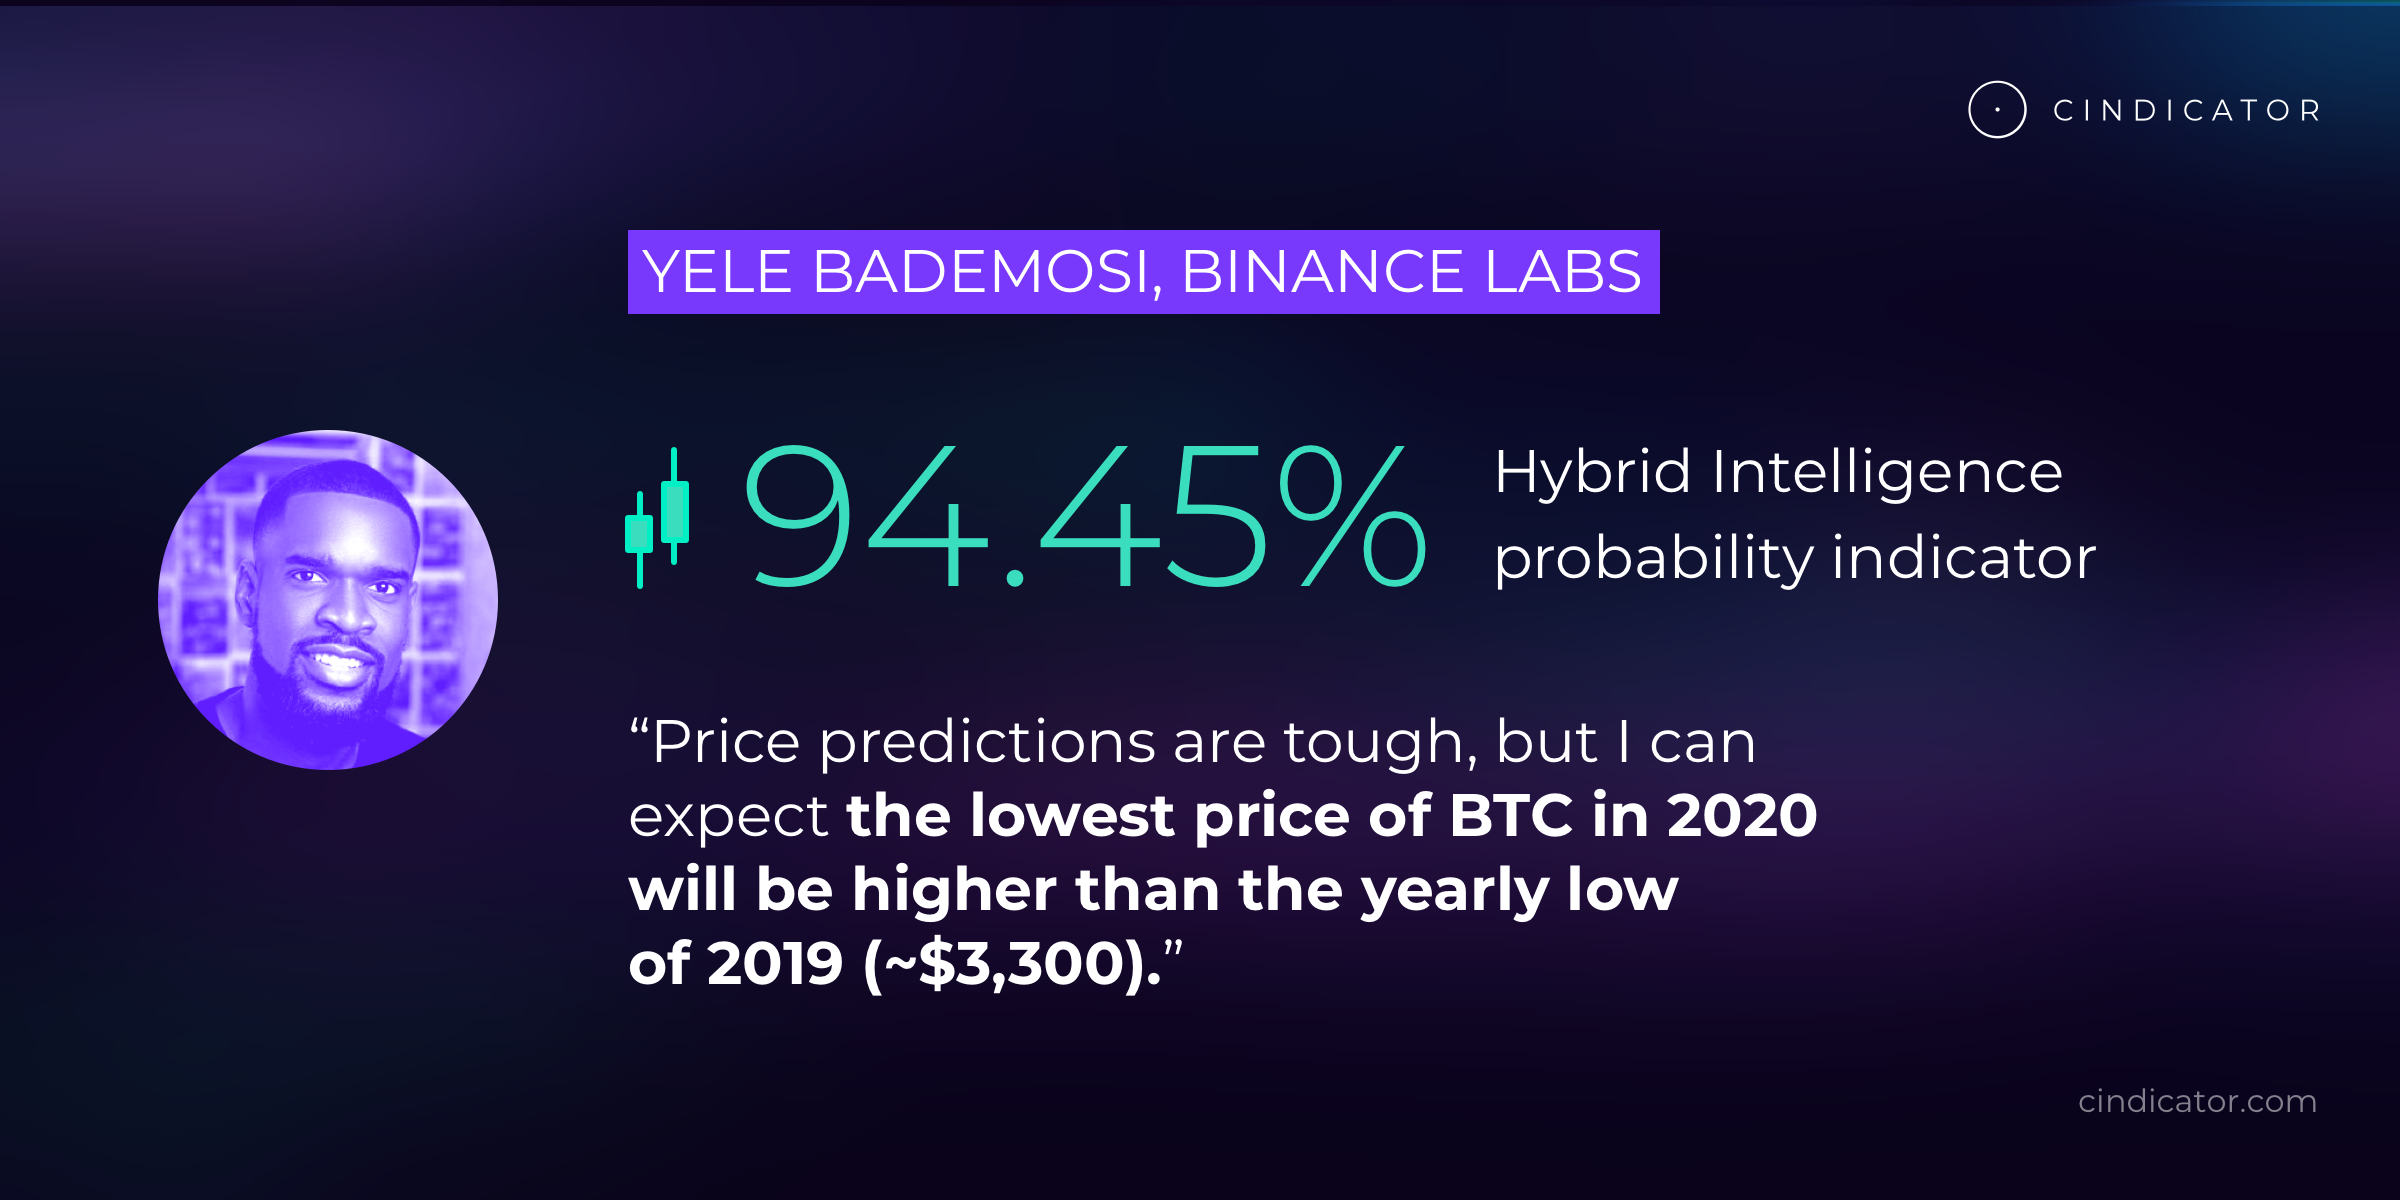 Yele Bademos, Binance Labs - Bitcoin 2020 prediction